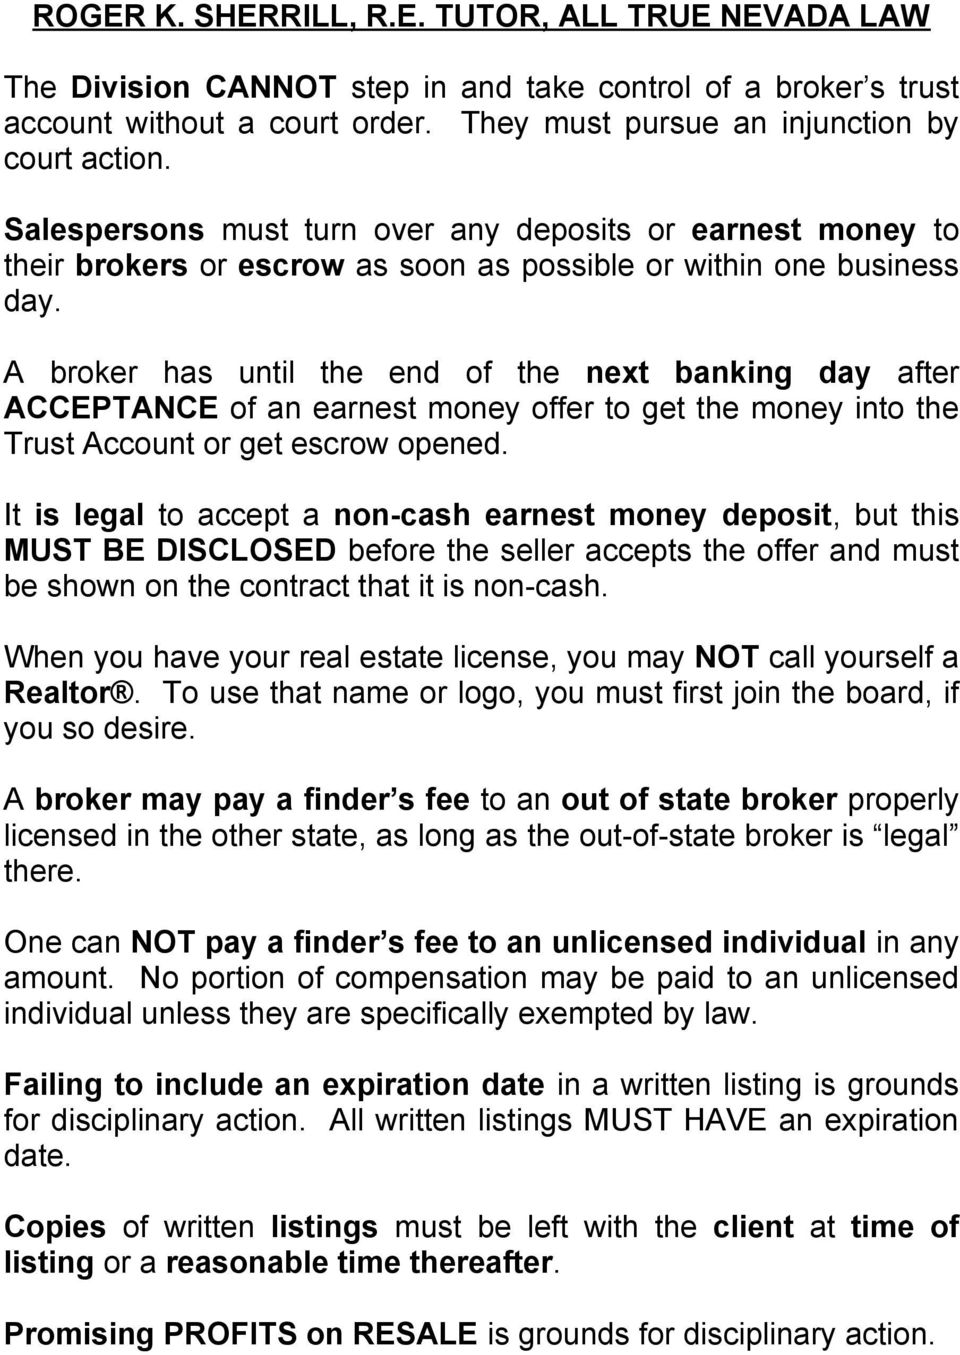 A broker has until the end of the next banking day after ACCEPTANCE of an earnest money offer to get the money into the Trust Account or get escrow opened.